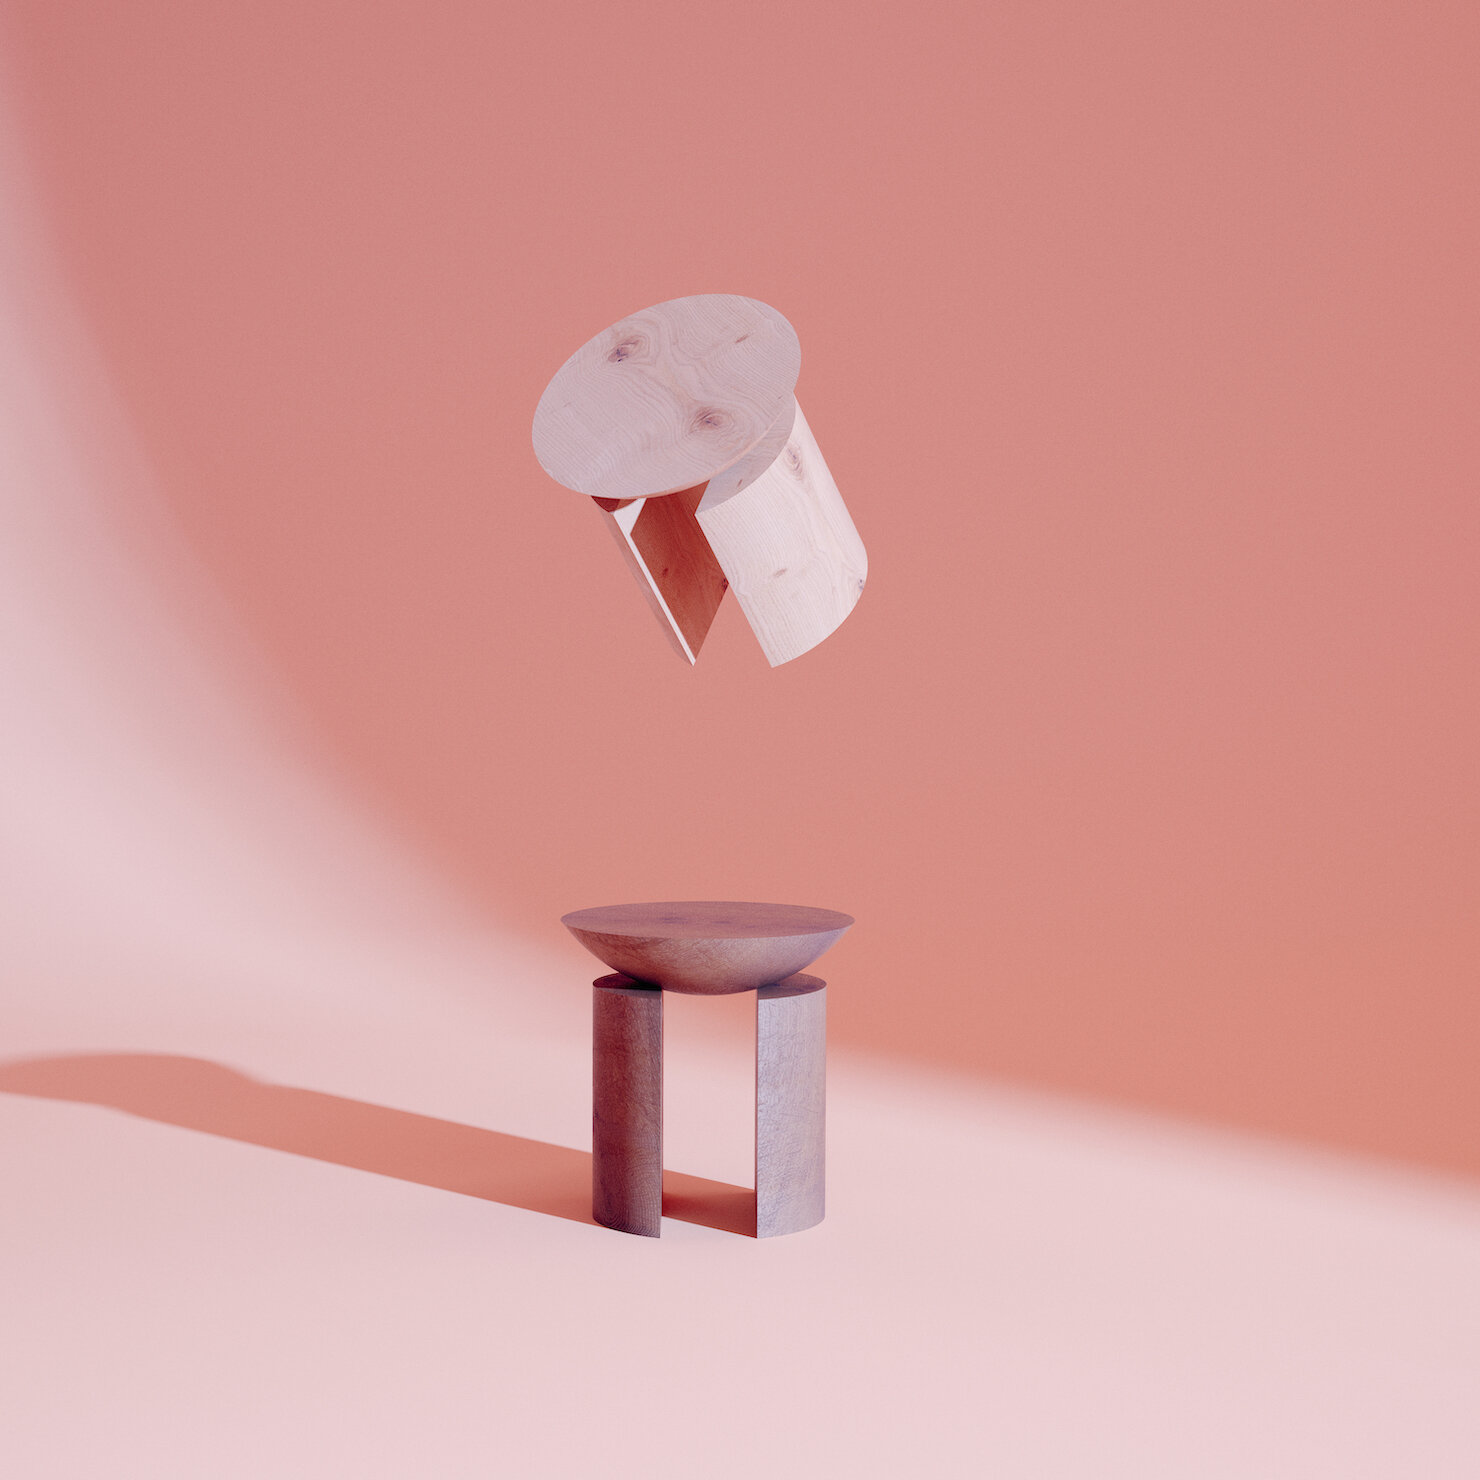 The Anca stool means hip, and is inspired by colonialism, Christian desire, asceticism and sin.